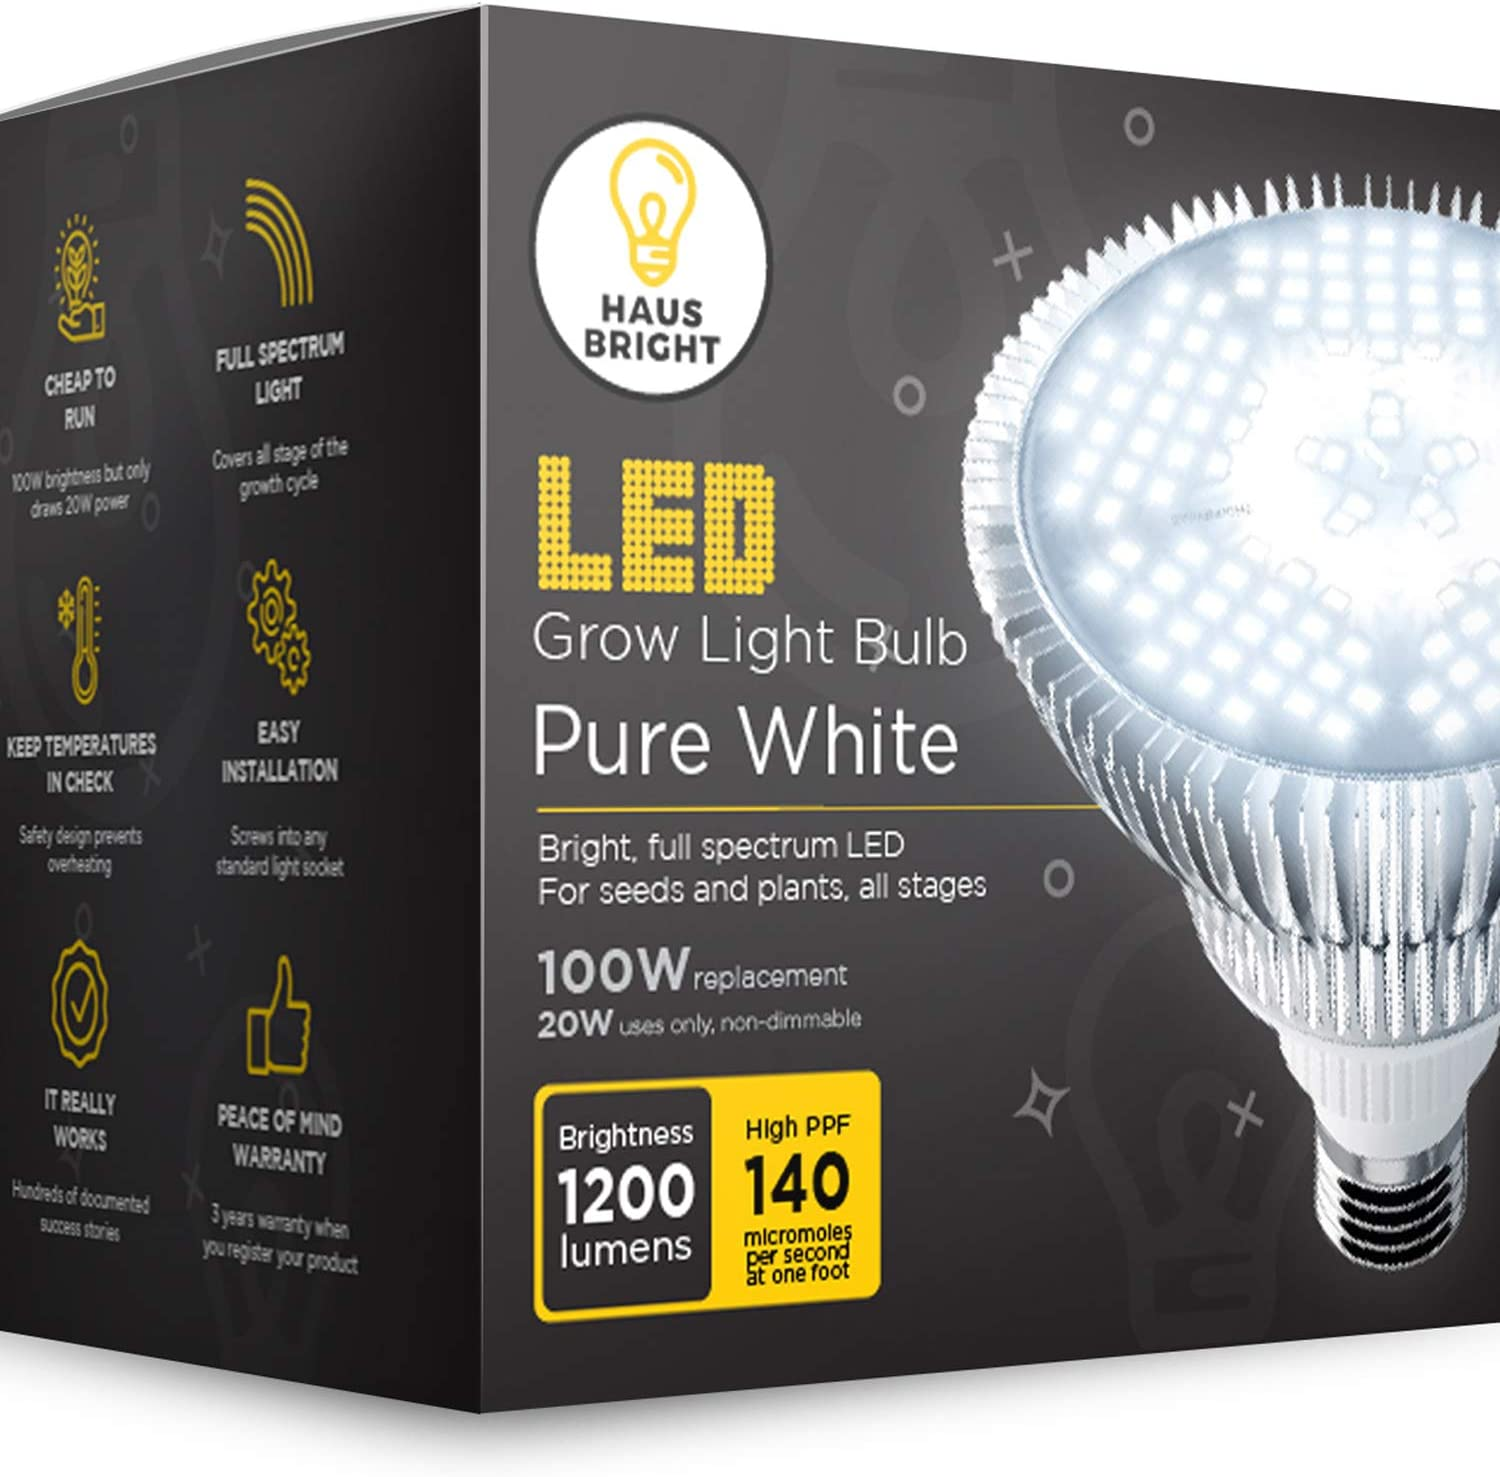 Haus Bright E27 Full-Spectrum LED Grow Light Bulb